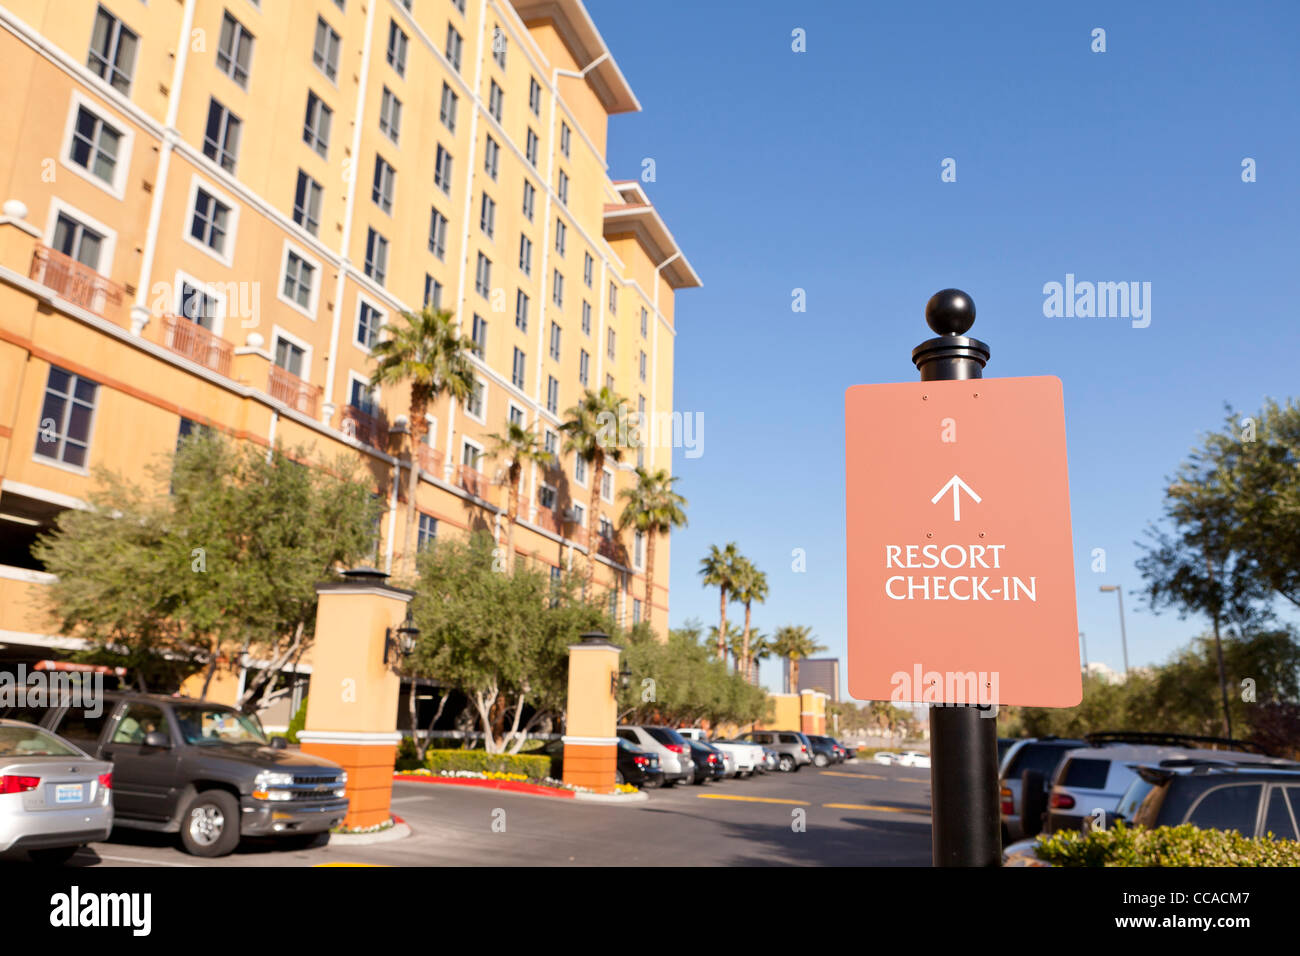 Resort check in sign - Stock Image